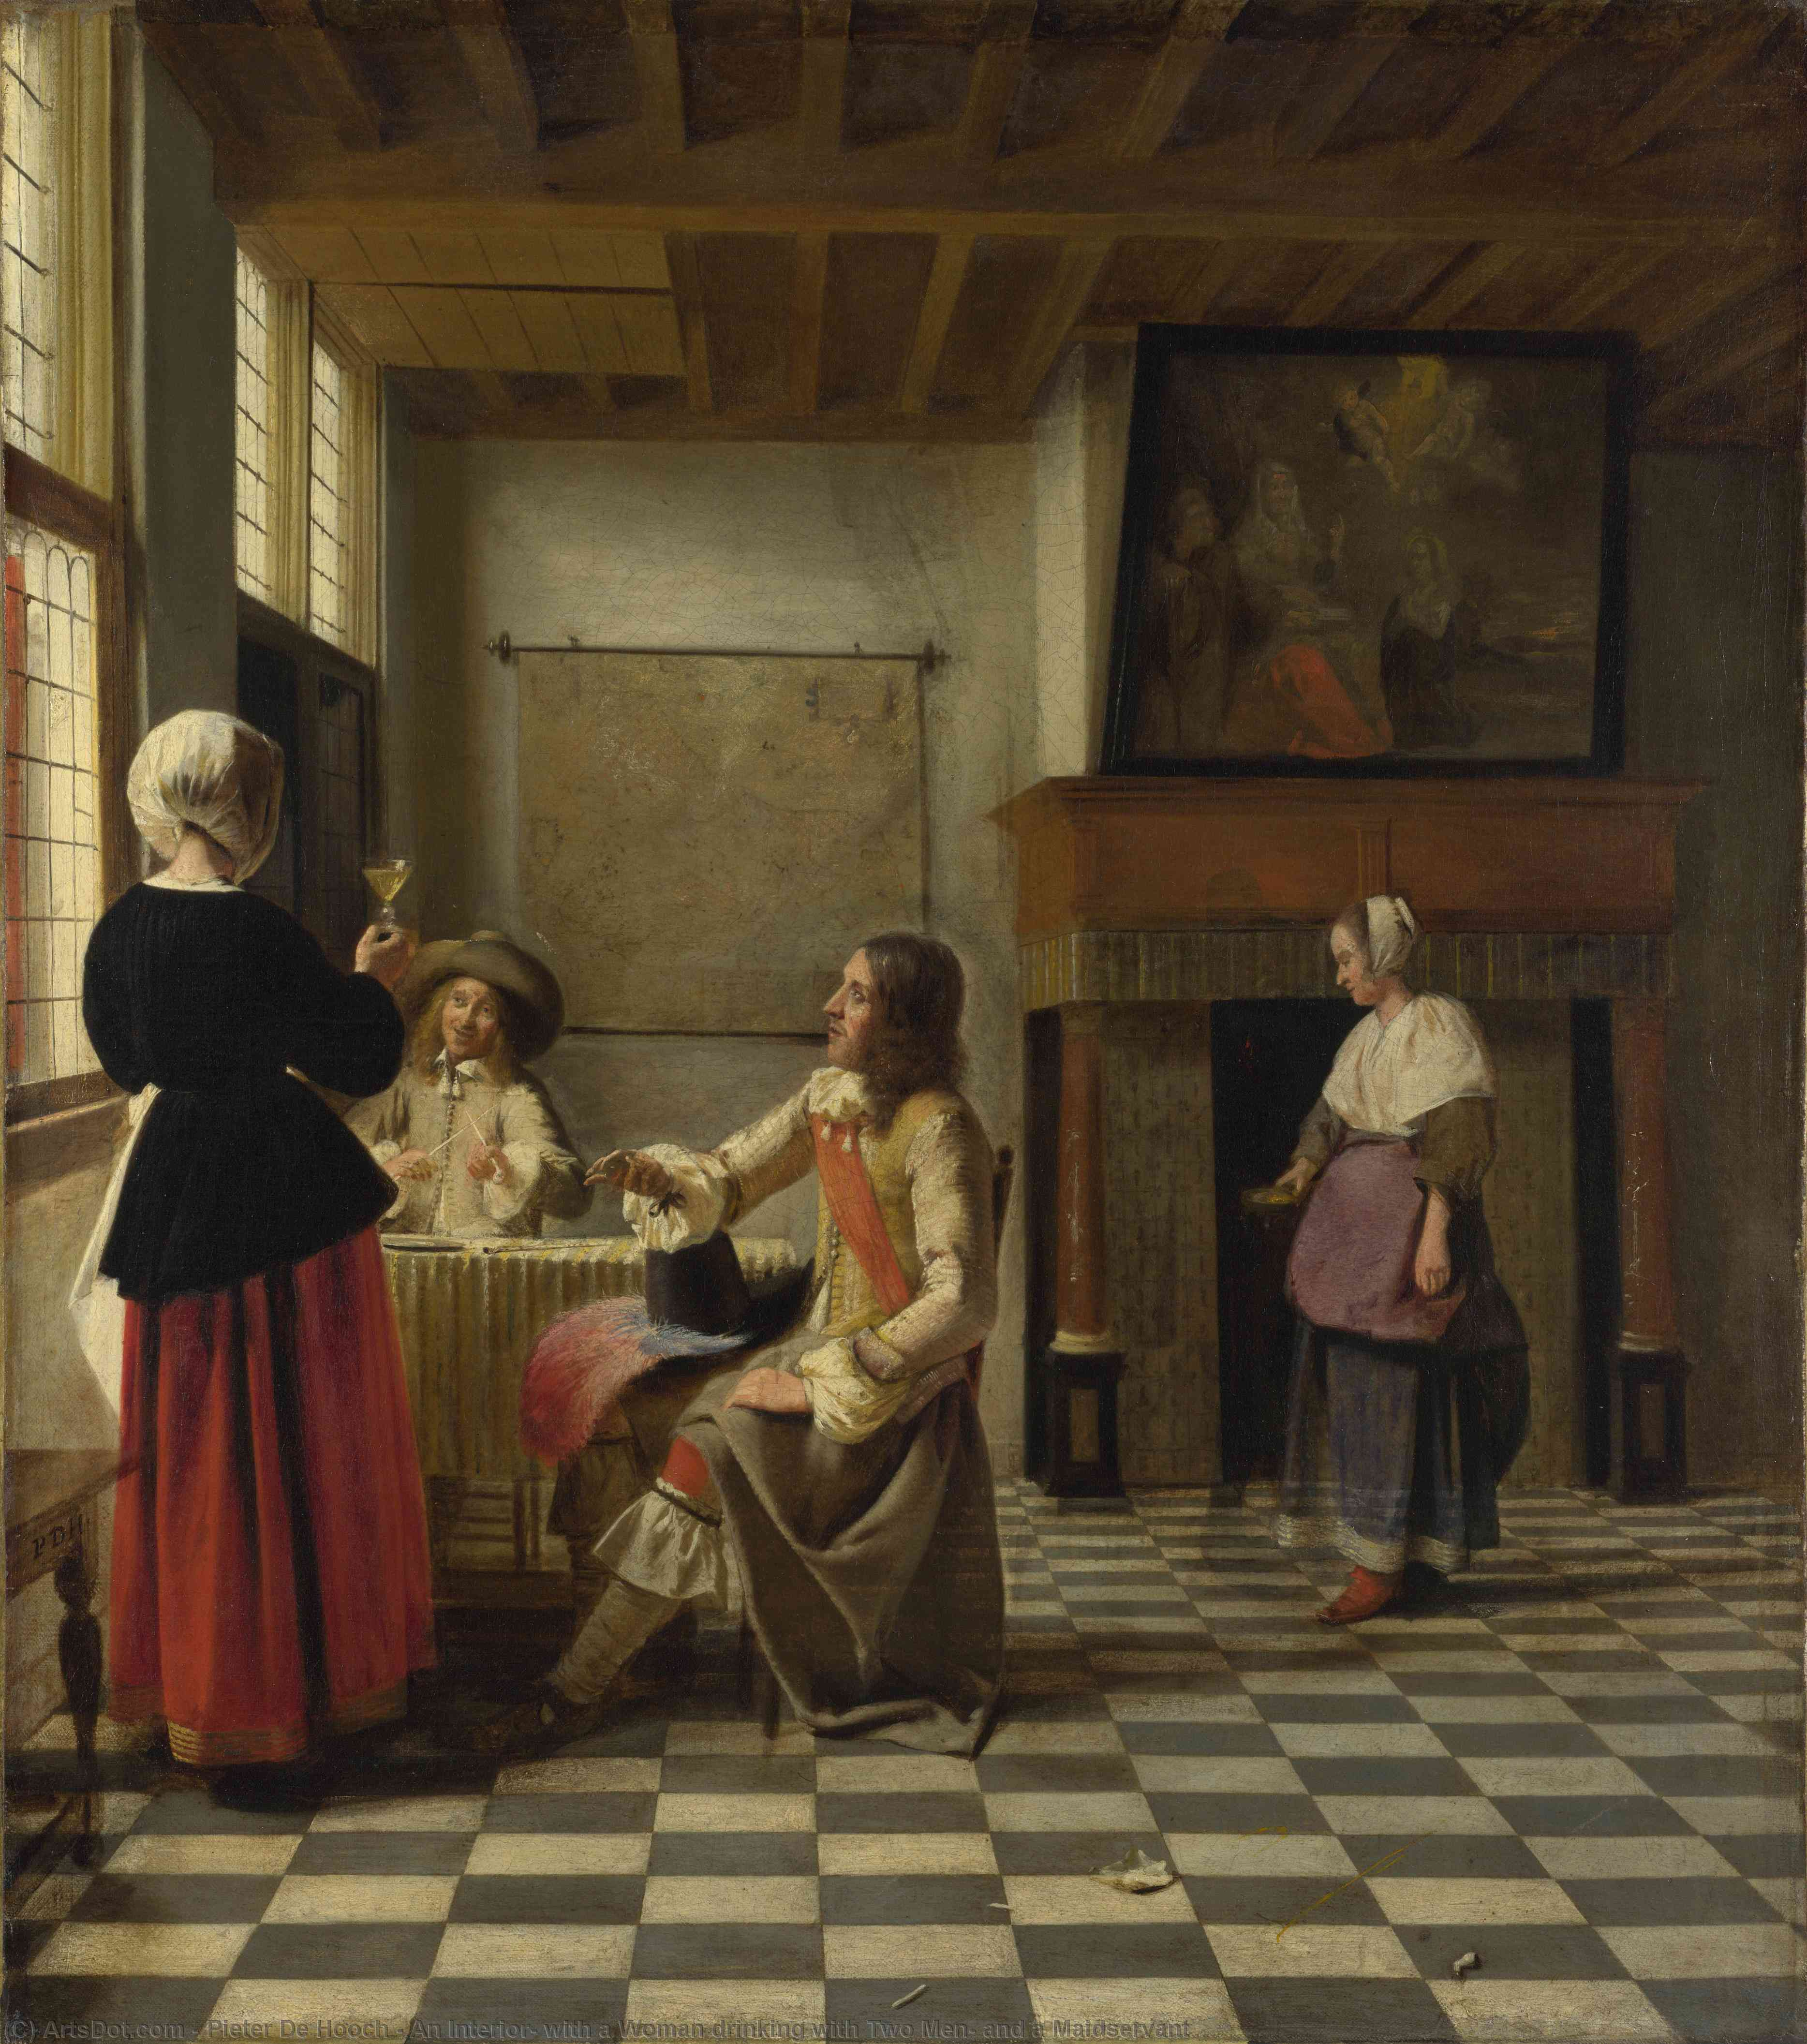 Wikioo.org - The Encyclopedia of Fine Arts - Painting, Artwork by Pieter De Hooch - An Interior, with a Woman drinking with Two Men, and a Maidservant